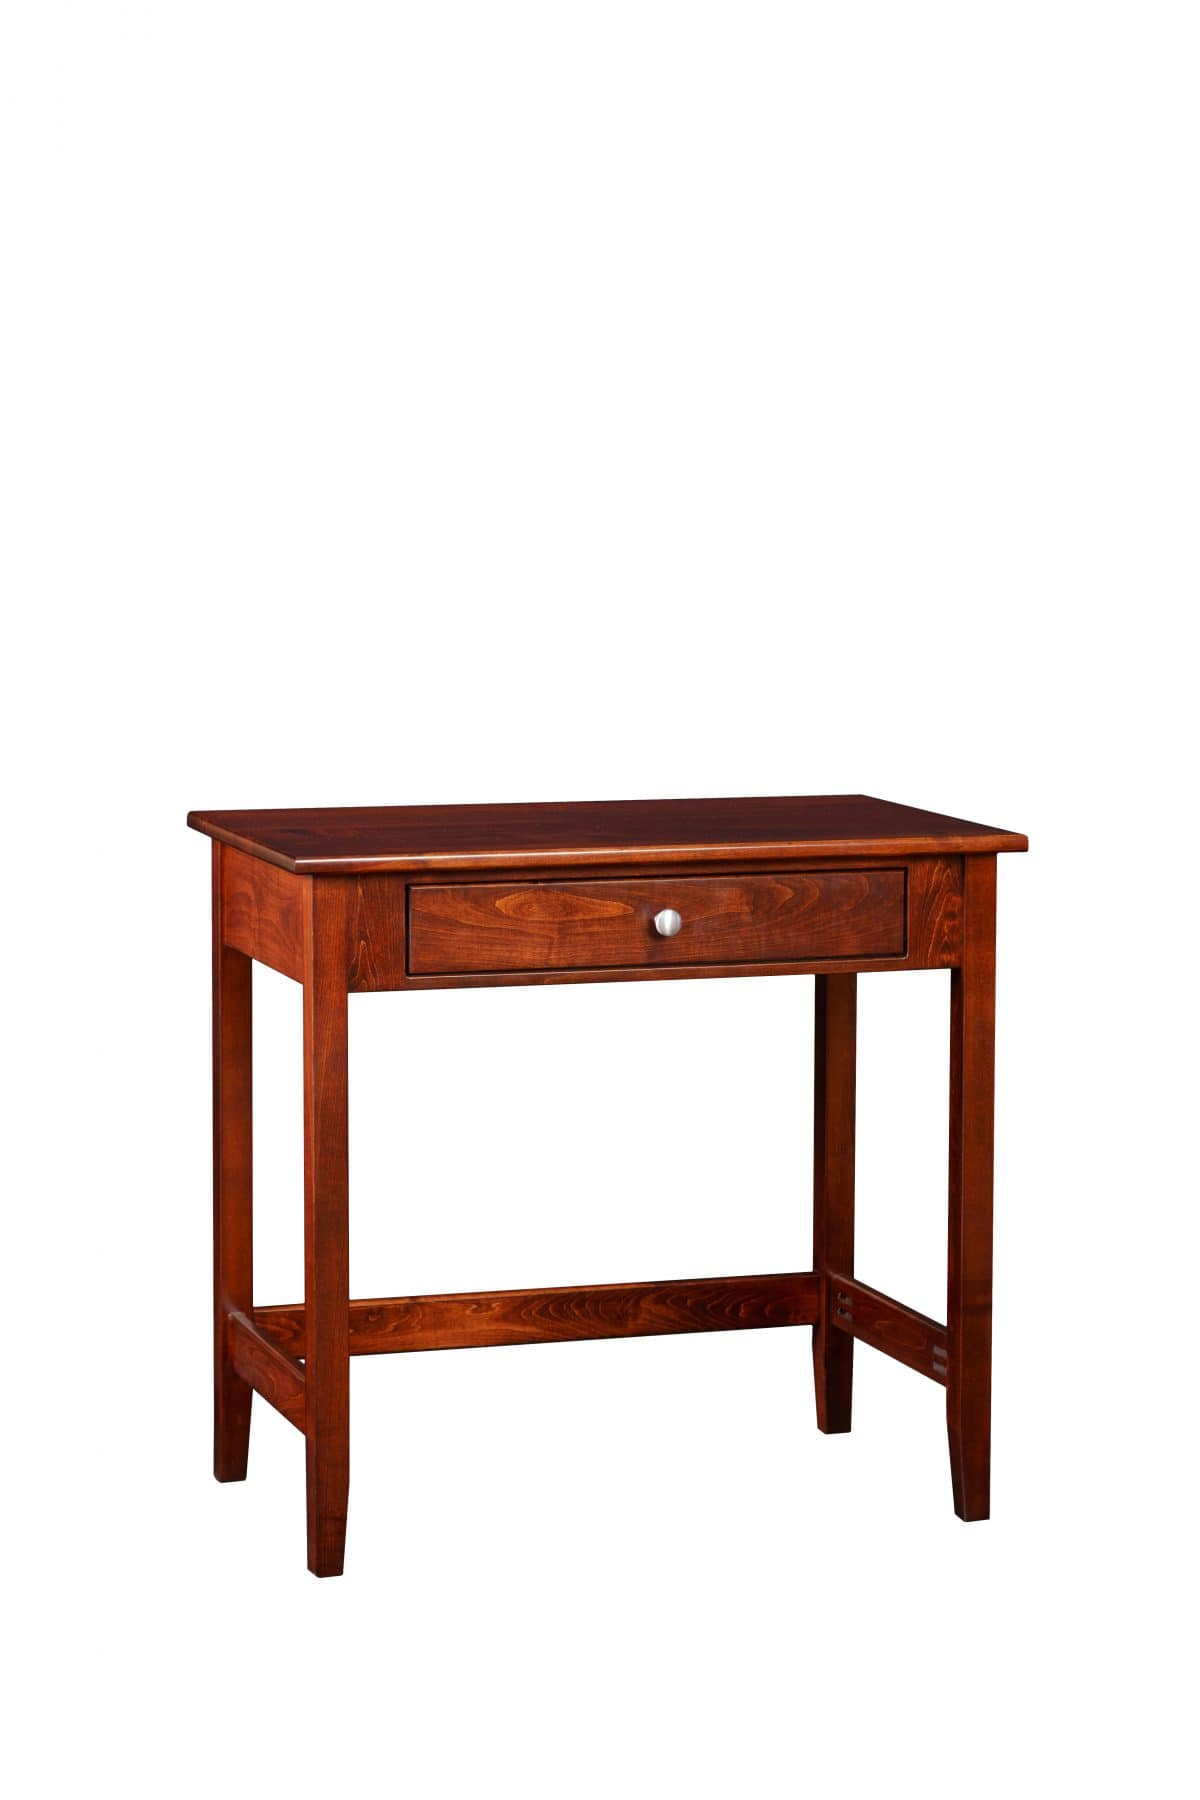 Photo of: MPW WRITING TABLE/COMPUTER TABLE